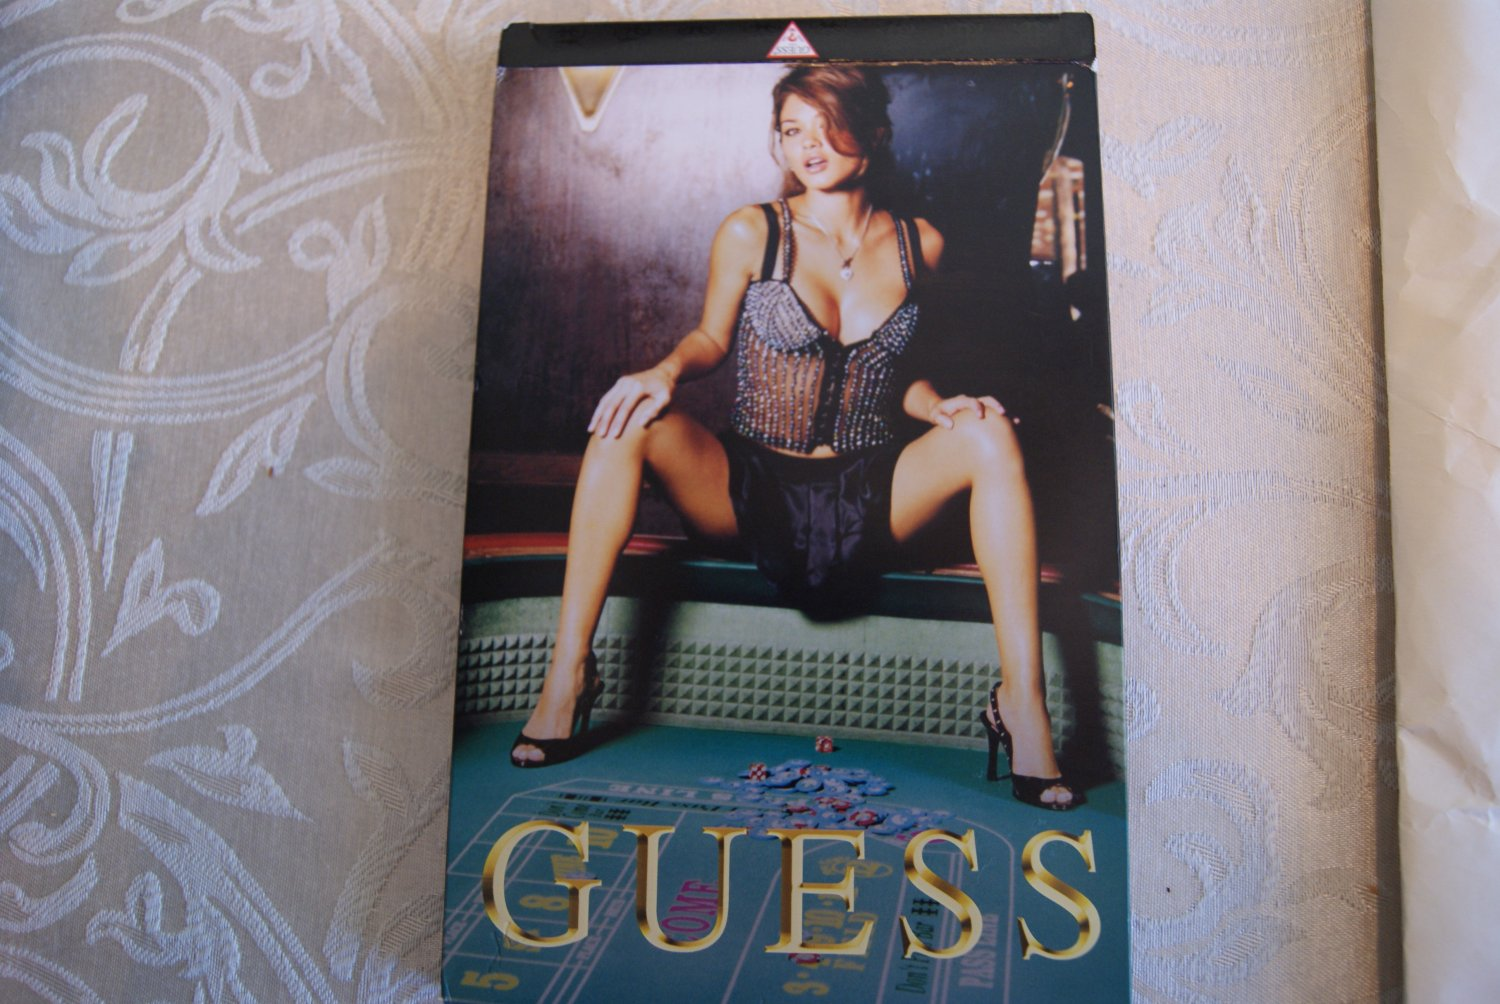 Guess playing cards